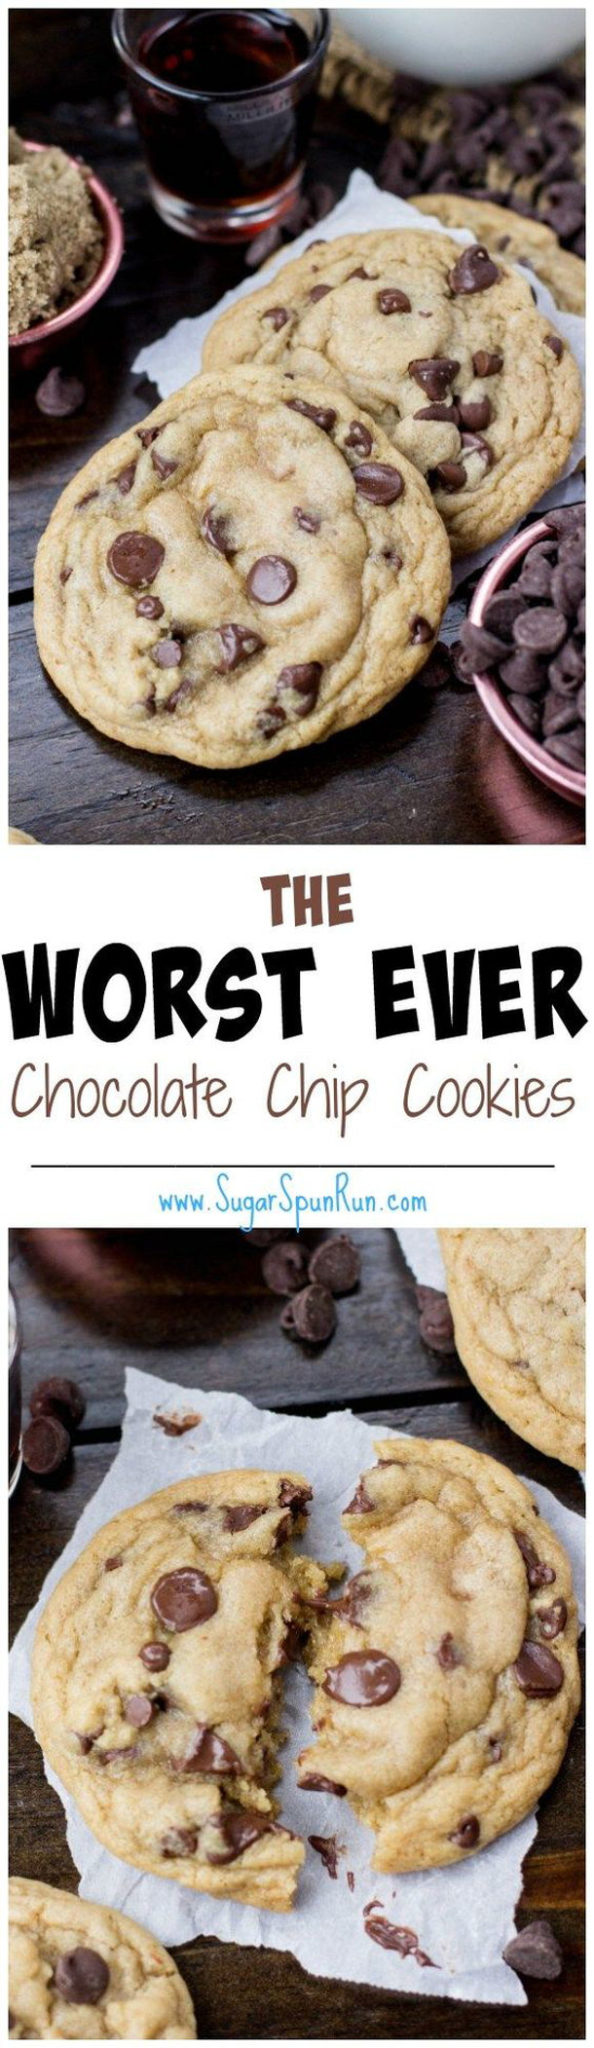 The Worst Ever Chocolate Chip Cookies Recipe via Sugar Spun Run